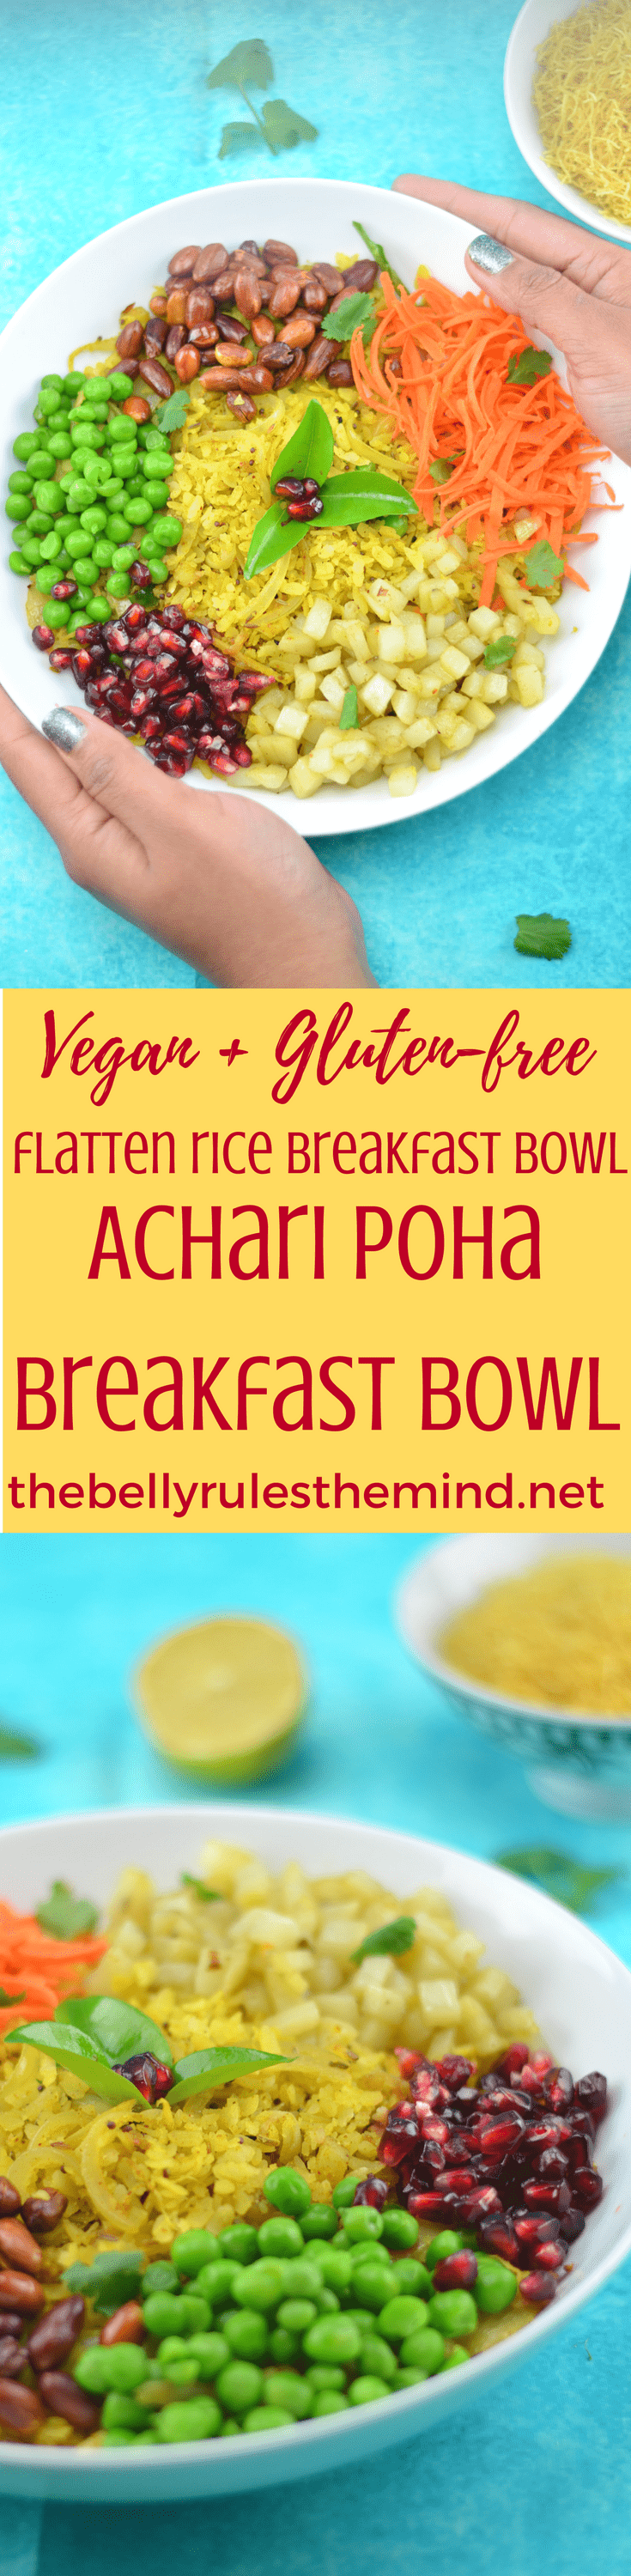 Achari Poha Breakfast Bowl- A perfect breakfast recipe made with flattened rice seasoned with flavorful Achari spice & loads of colorful veggies.</strong> <strong>A super-fast recipe to soothe away those untimely hunger attacks!.Vegan.|https;//www.thebellyrulestheind.net @bellyrulesdmind